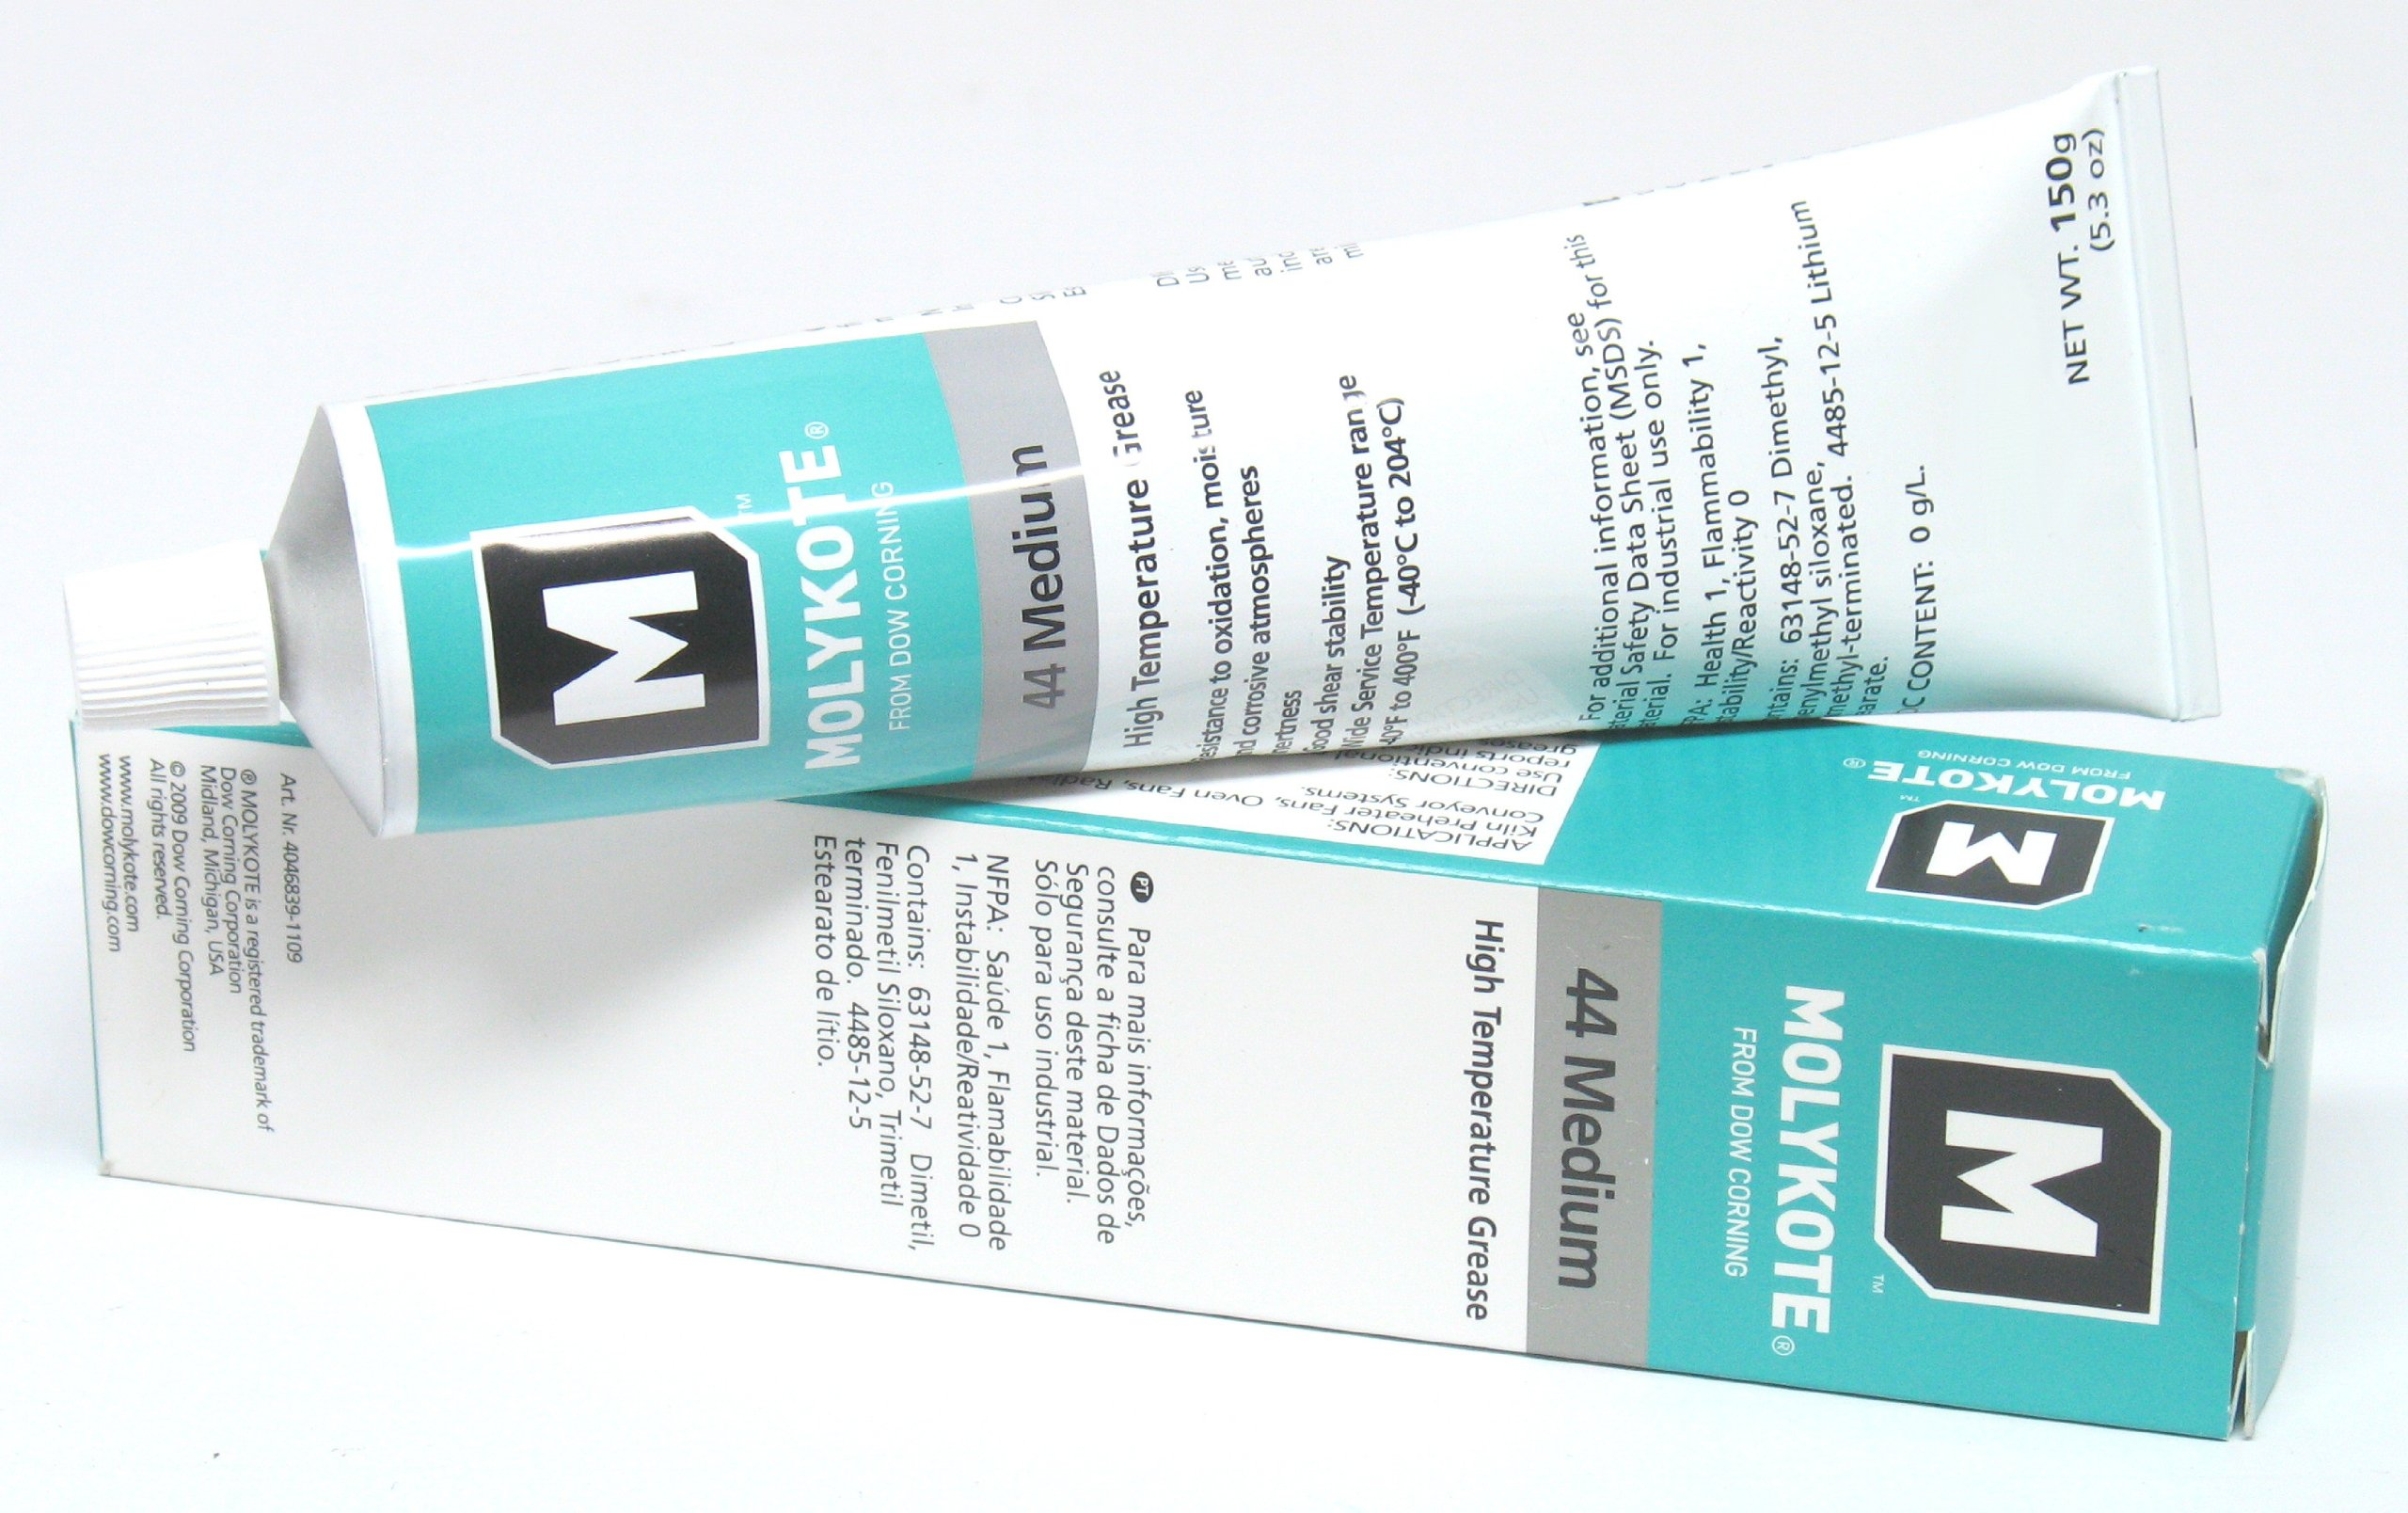 Dow Corning Molykote 44 Medium Grease Lubricant 5.3oz 150g Tube by Dow Corning 44 High Temperature Grease, Medium